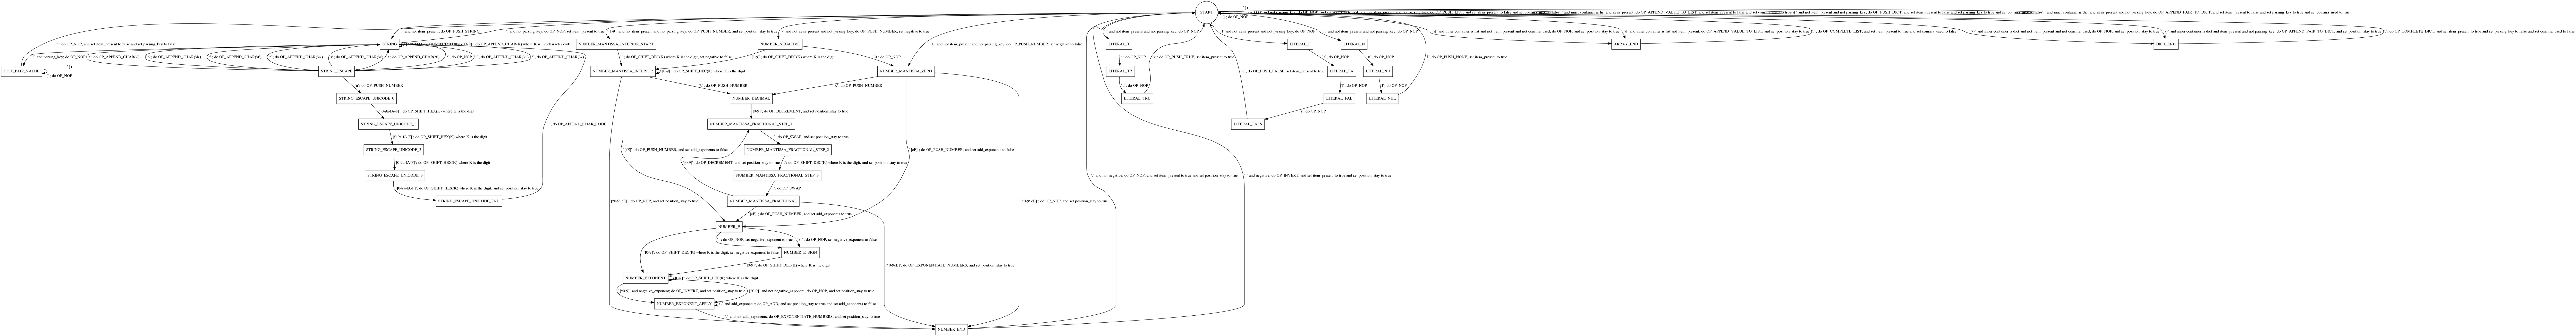 Bitmap rendering of the JSON-parsing finite state machine